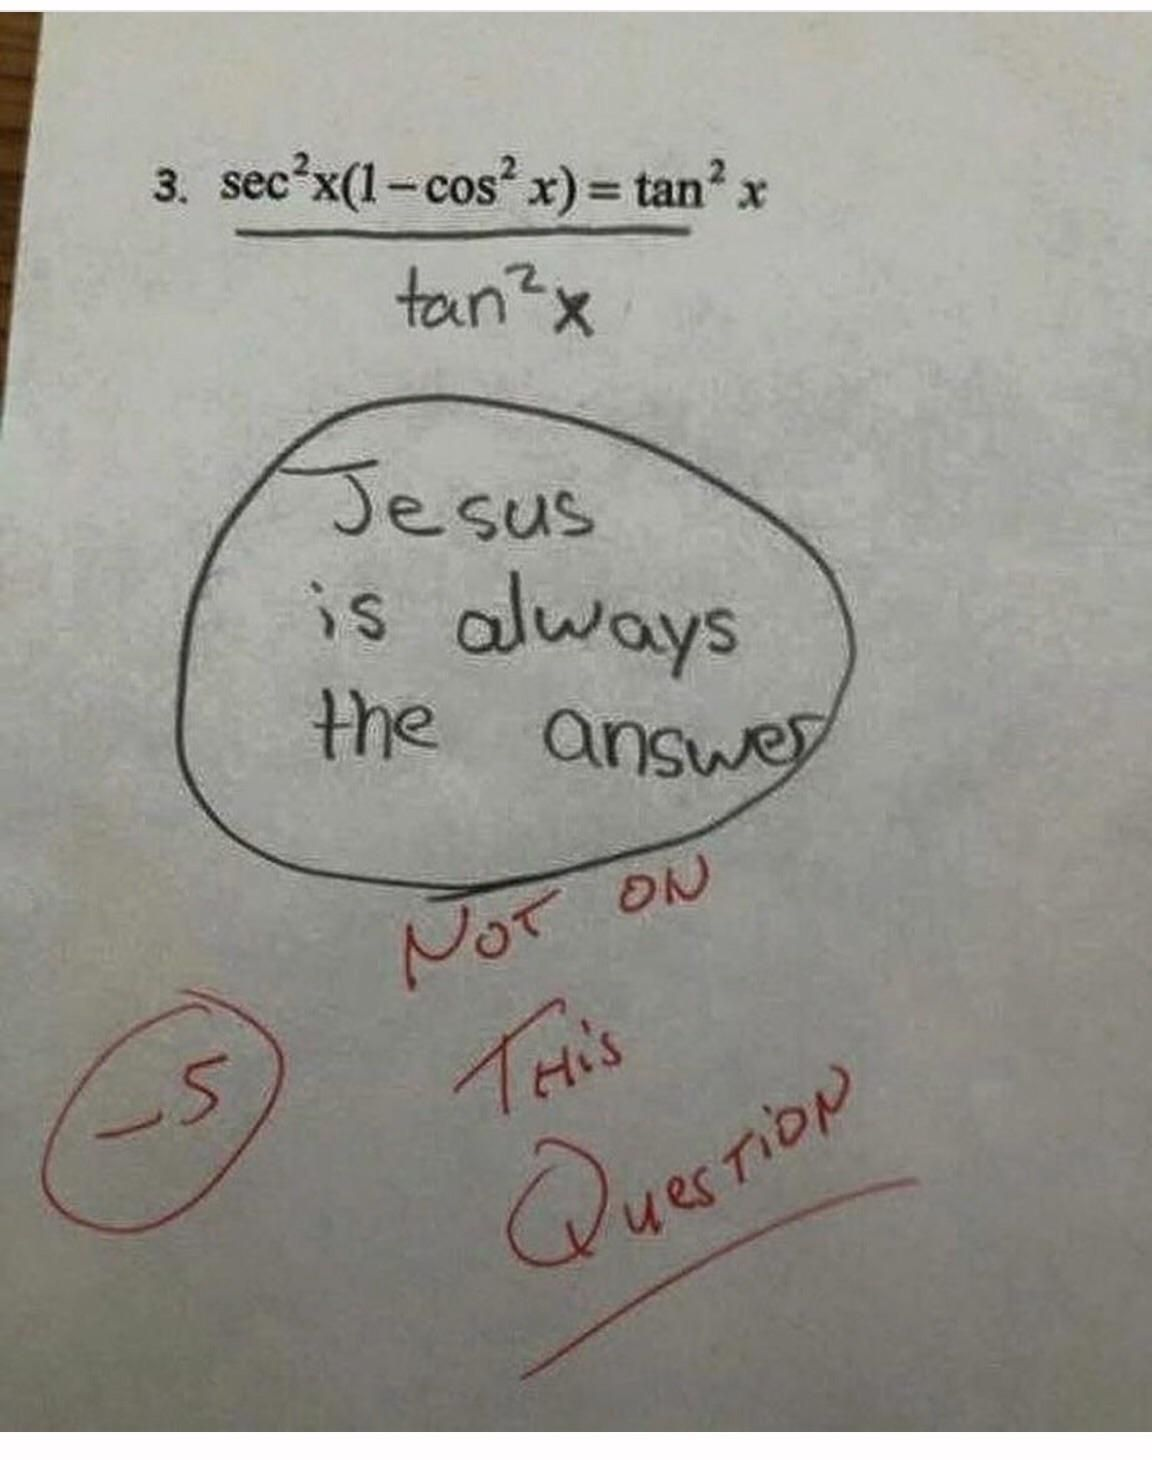 Jesus is *not* always the answer?